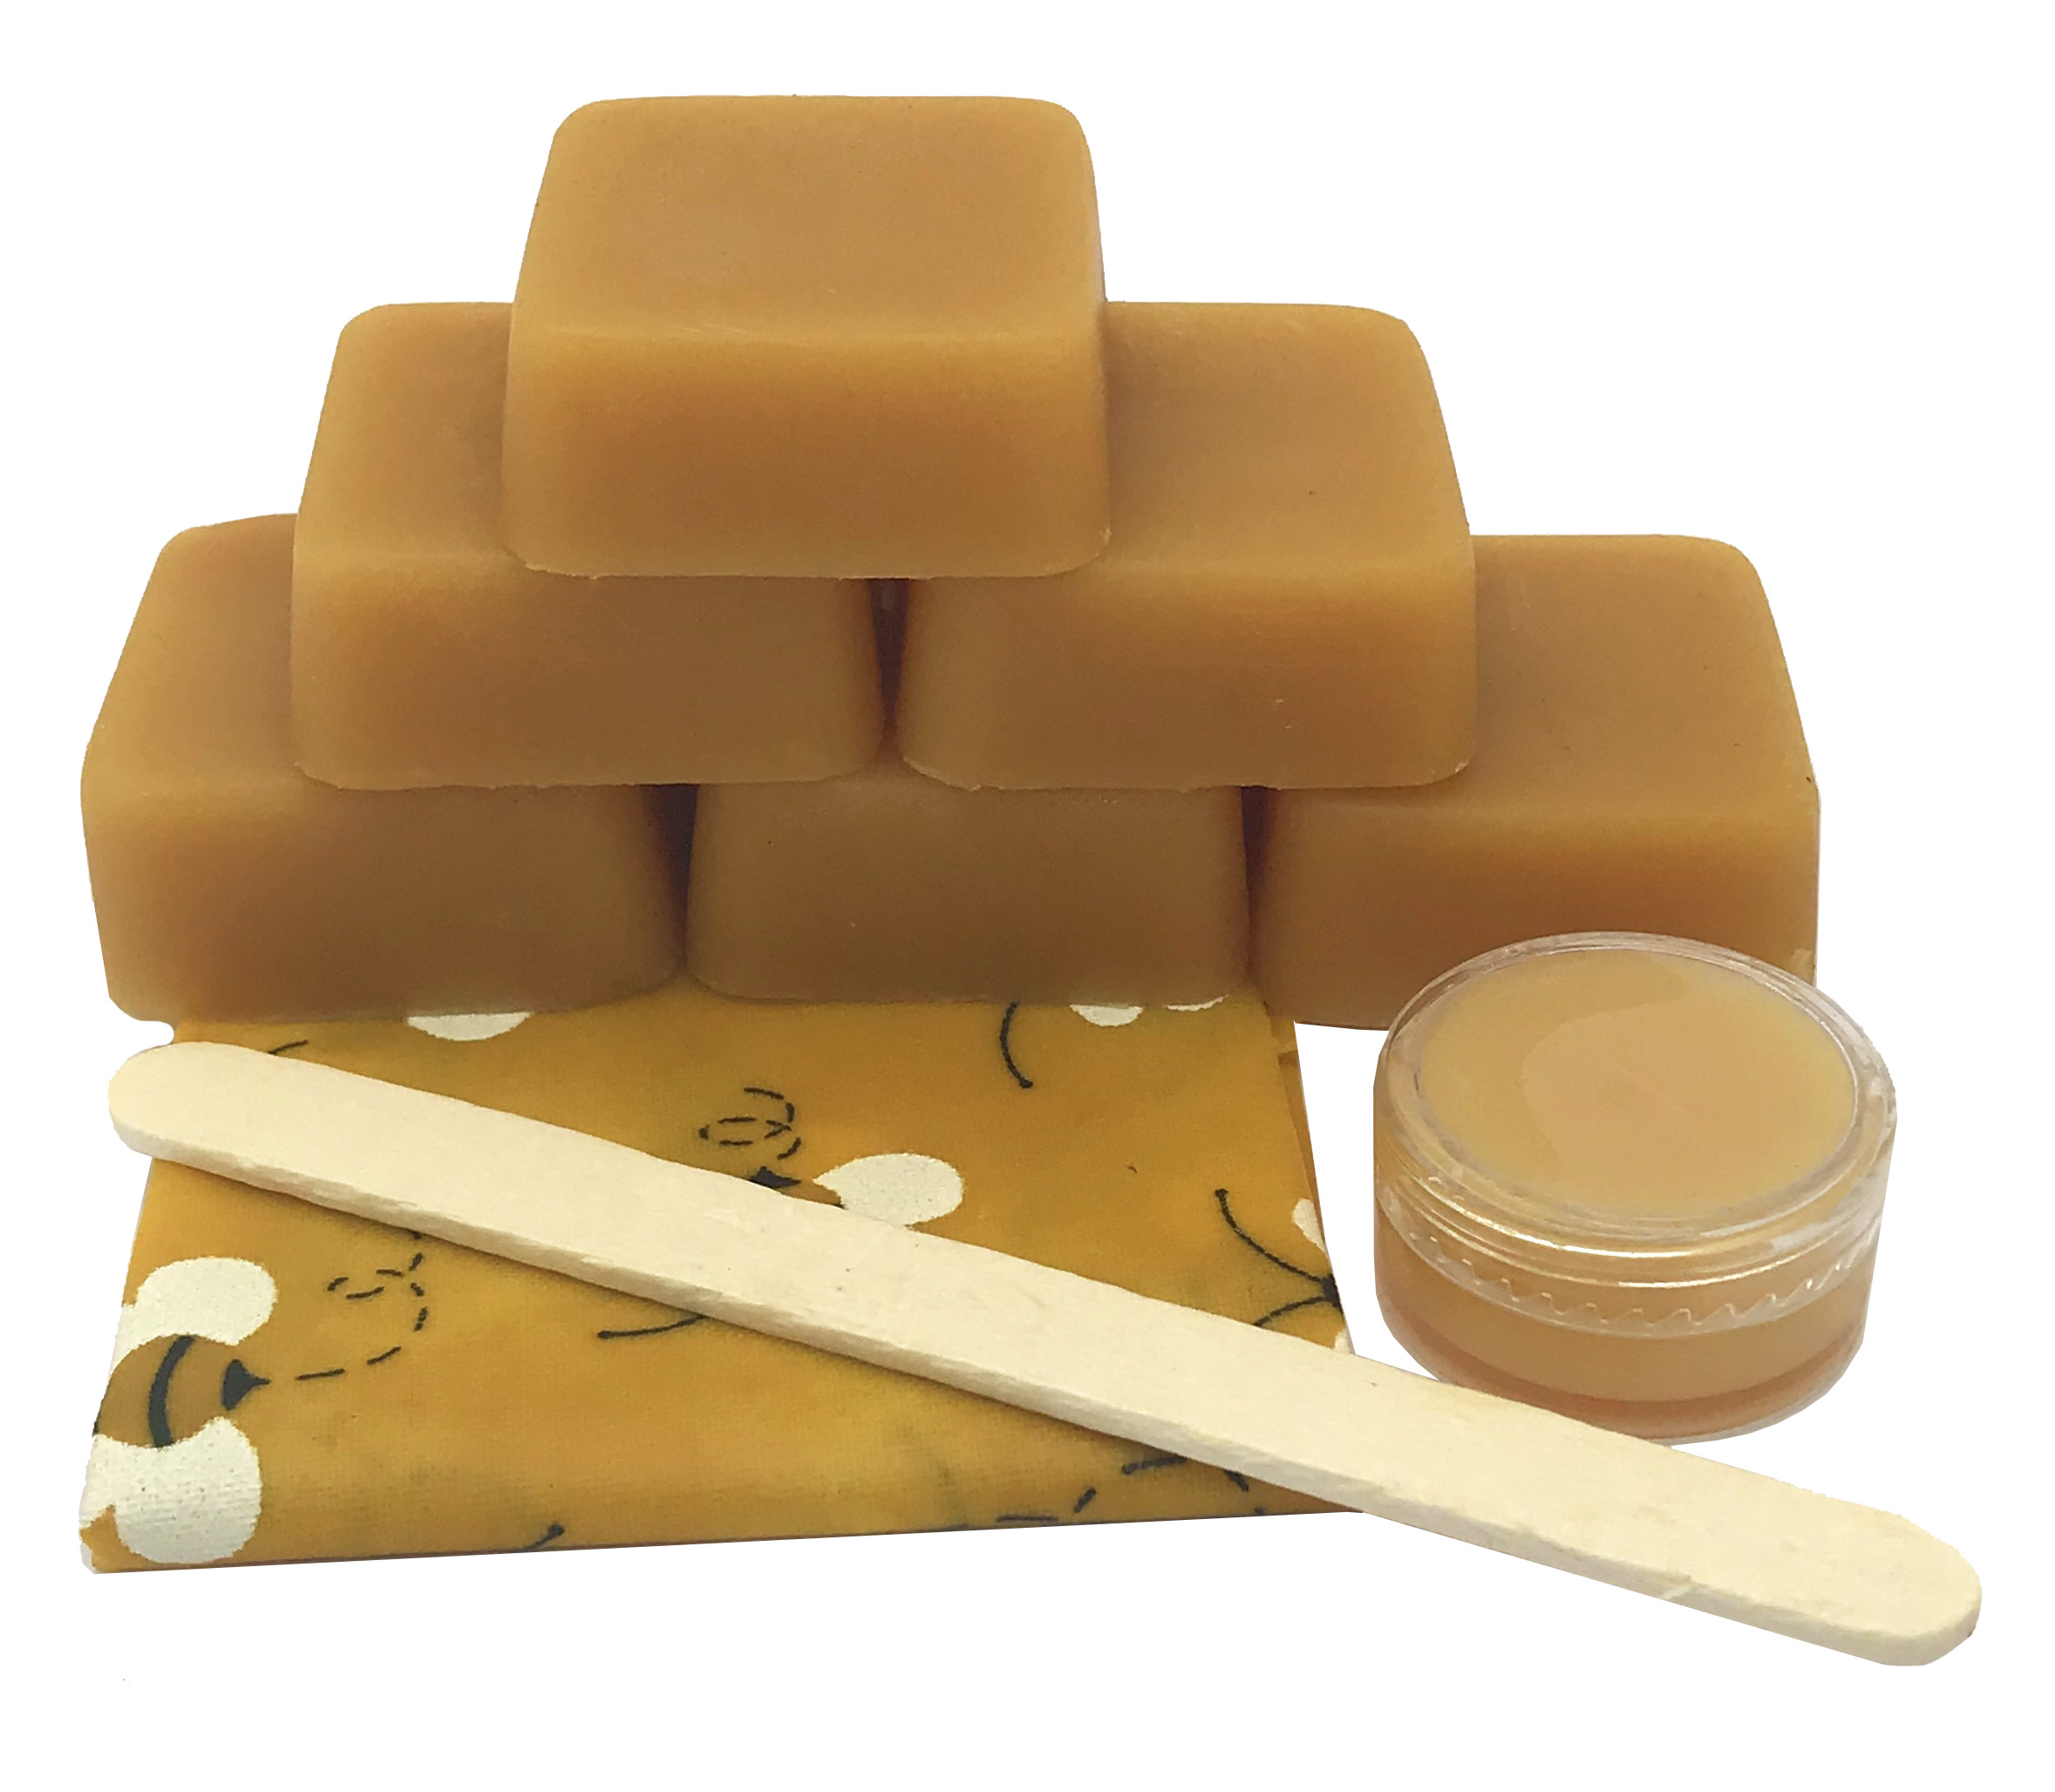 beeswax kit sitting on a wrap.jpg